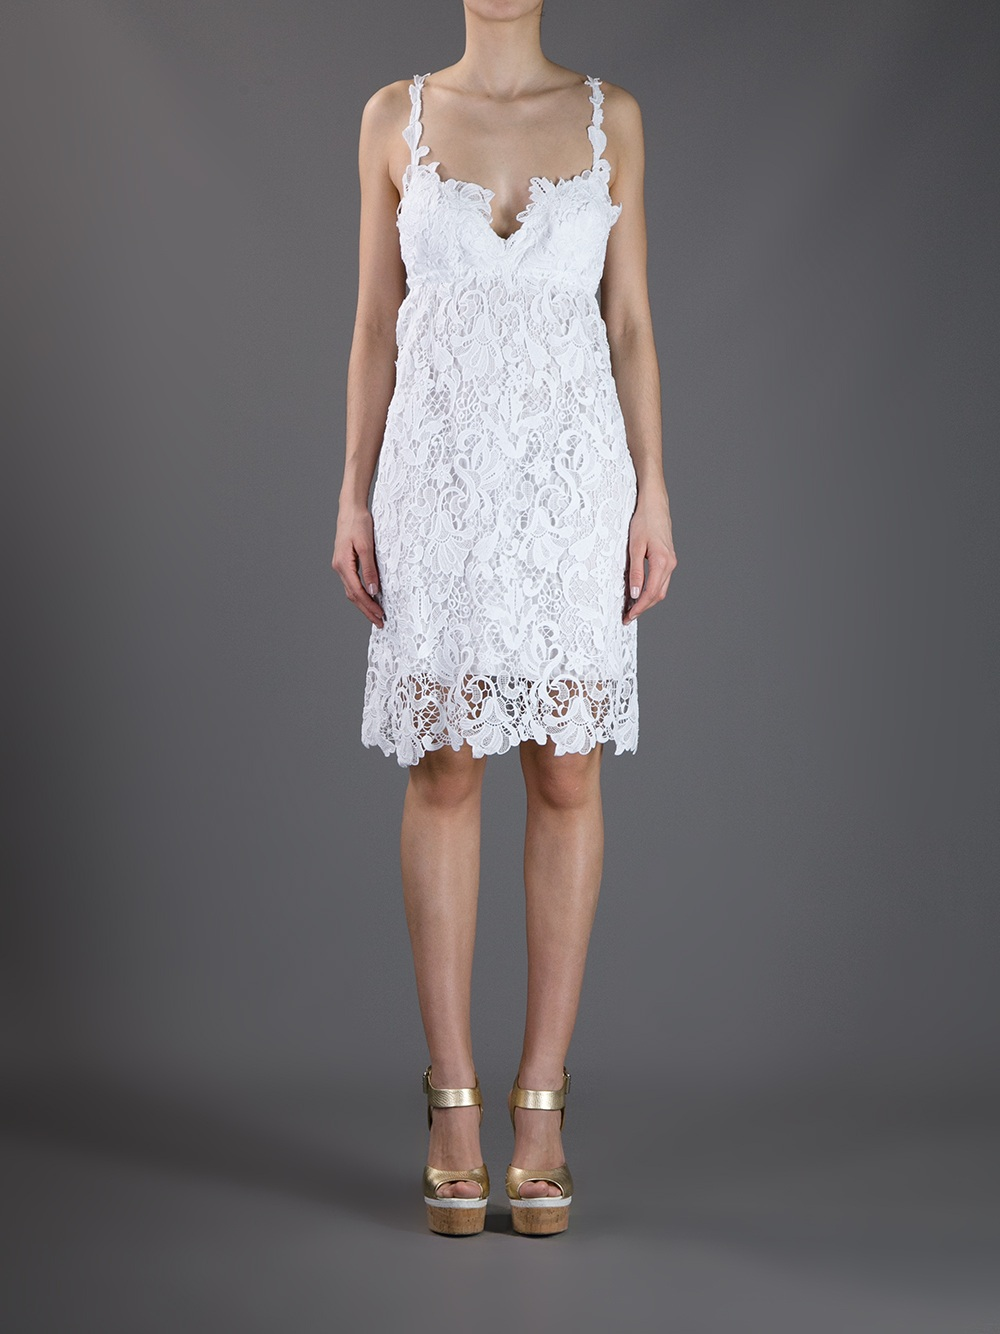 lace overlay dress - White Ermanno Scervino hRgUi